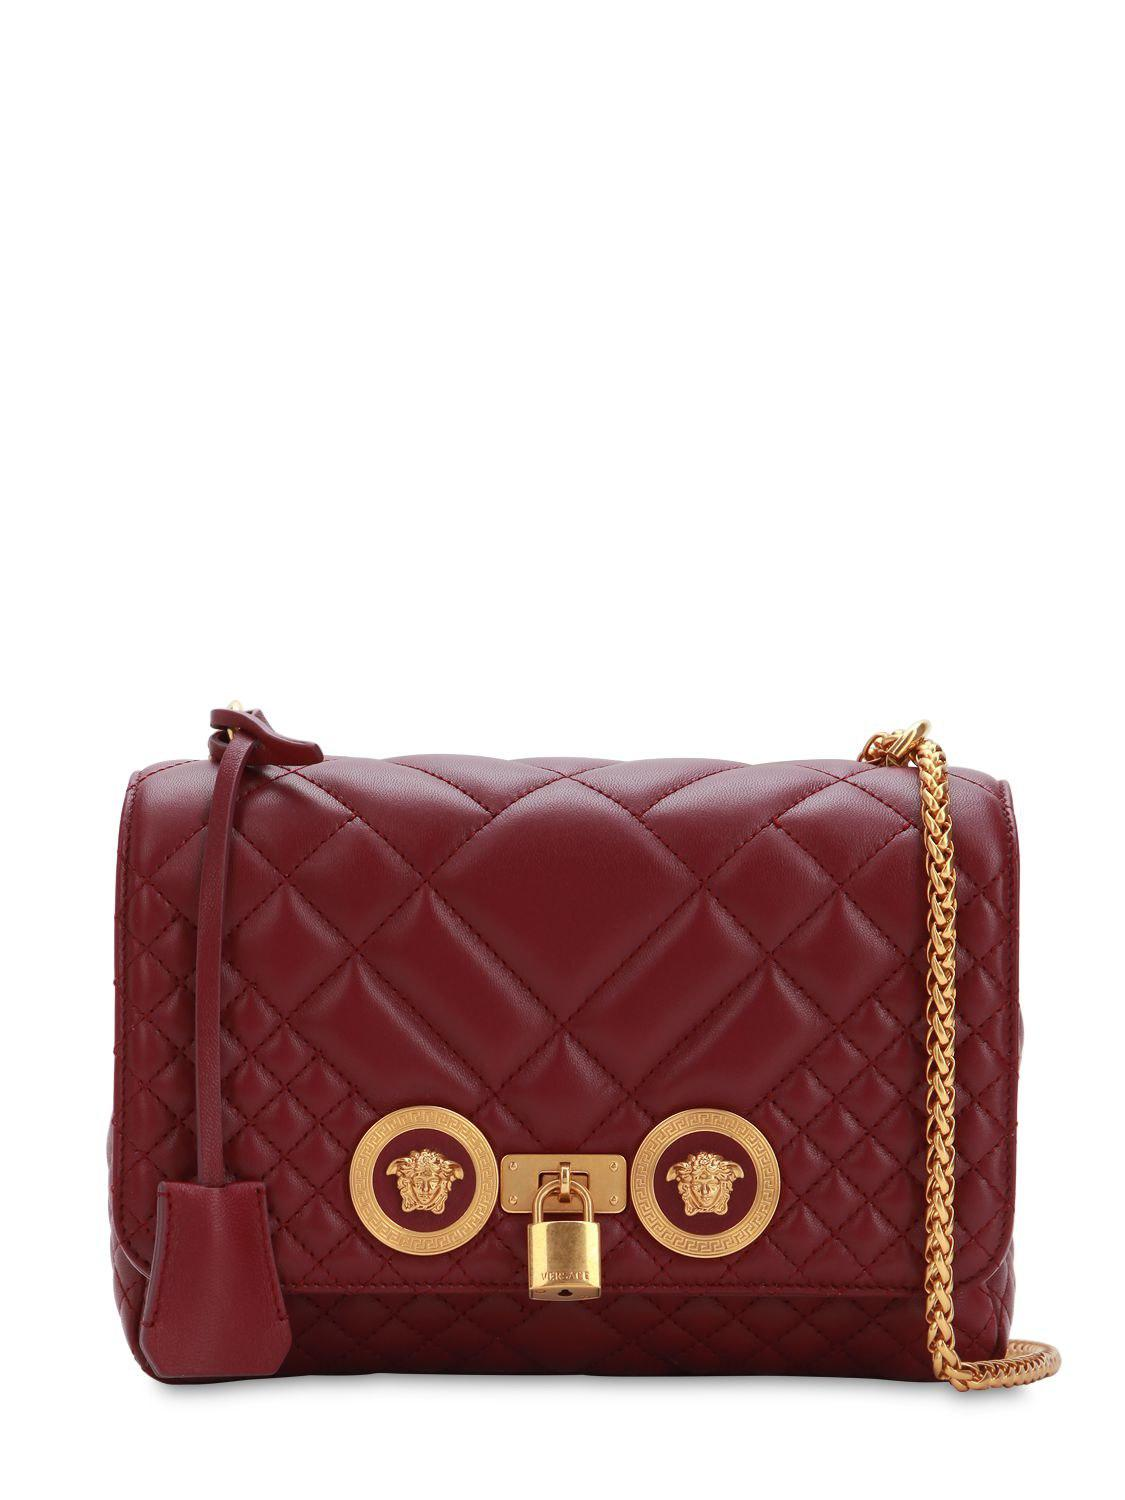 df7c57d24941 Versace - Multicolor Icon Medium Quilted Leather Shoulder Bag - Lyst. View  fullscreen